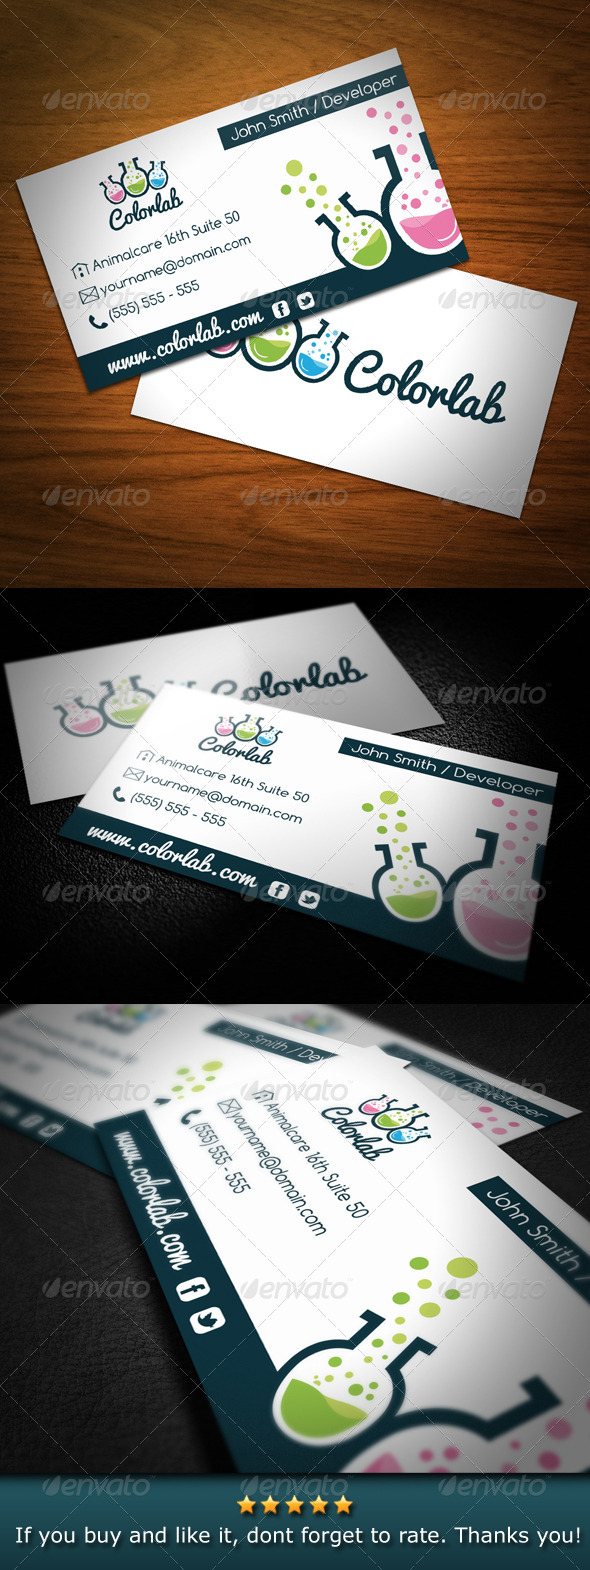 Color Lab Creative Studio Business Card